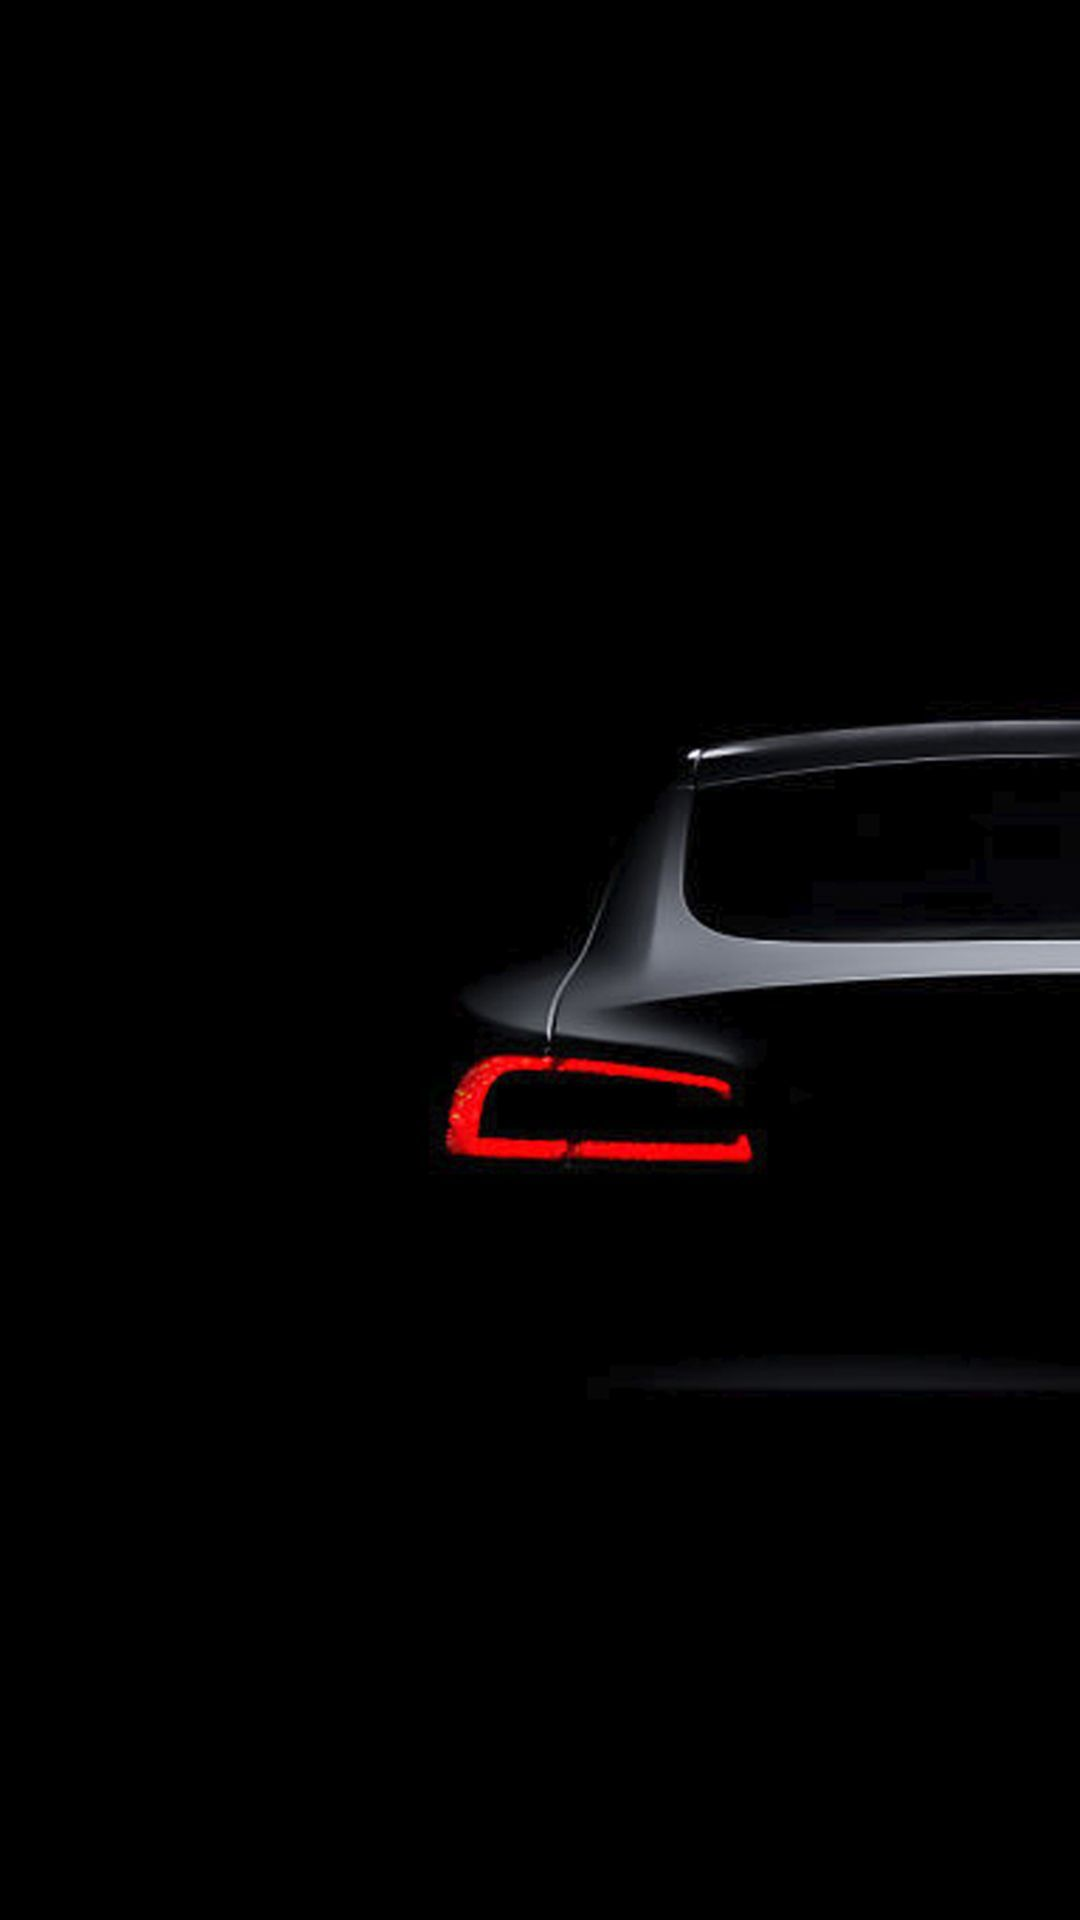 Tesla Model S Dark Brake Light Iphone 6 Hd Wallpaper Dark Wallpaper Iphone Tesla Roadster Car Iphone Wallpaper